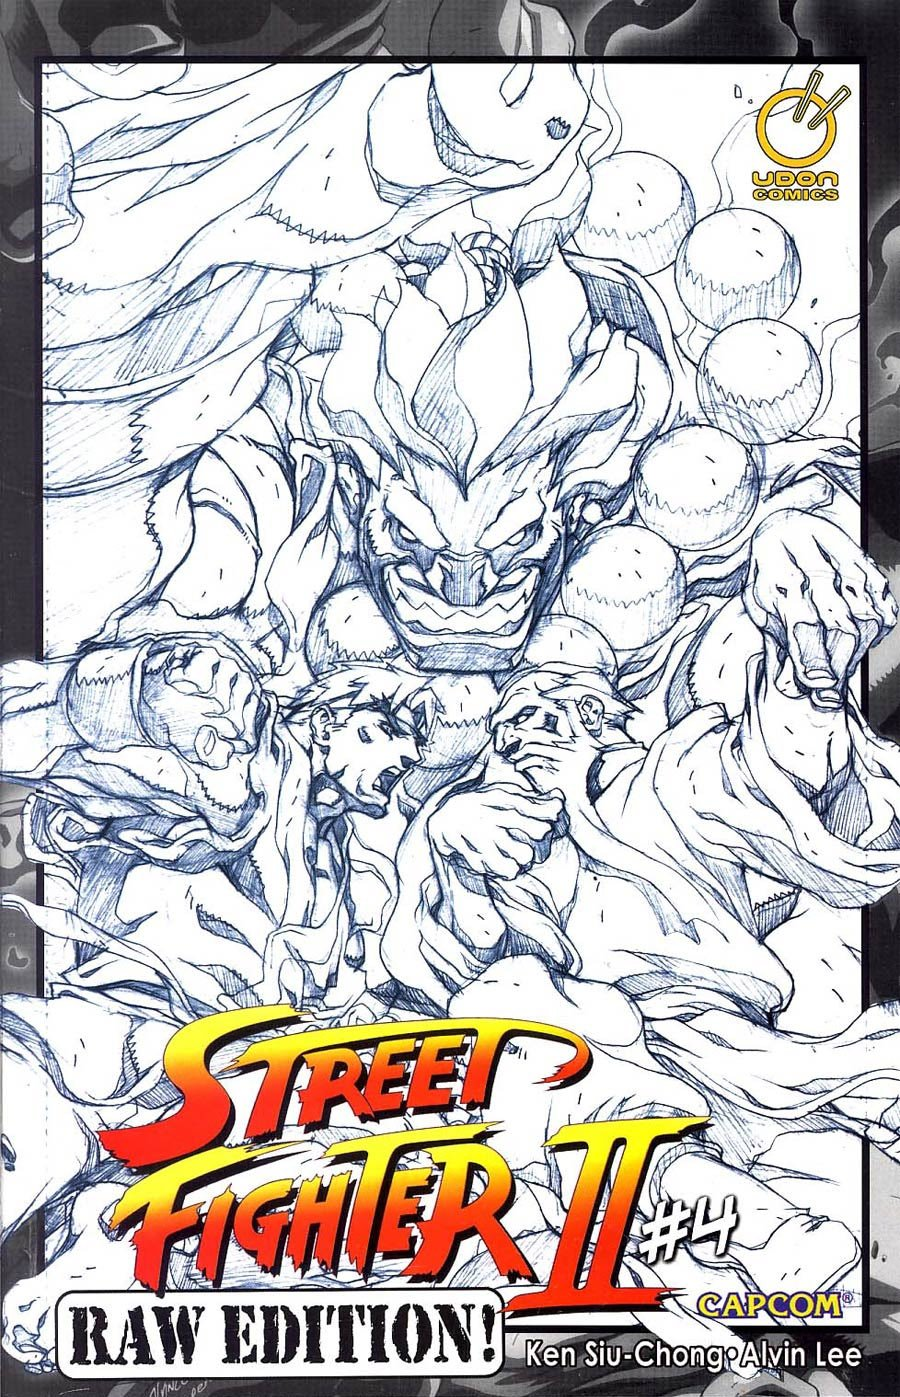 Street Fighter II Issue 4 (May 2006) (Raw Edition)